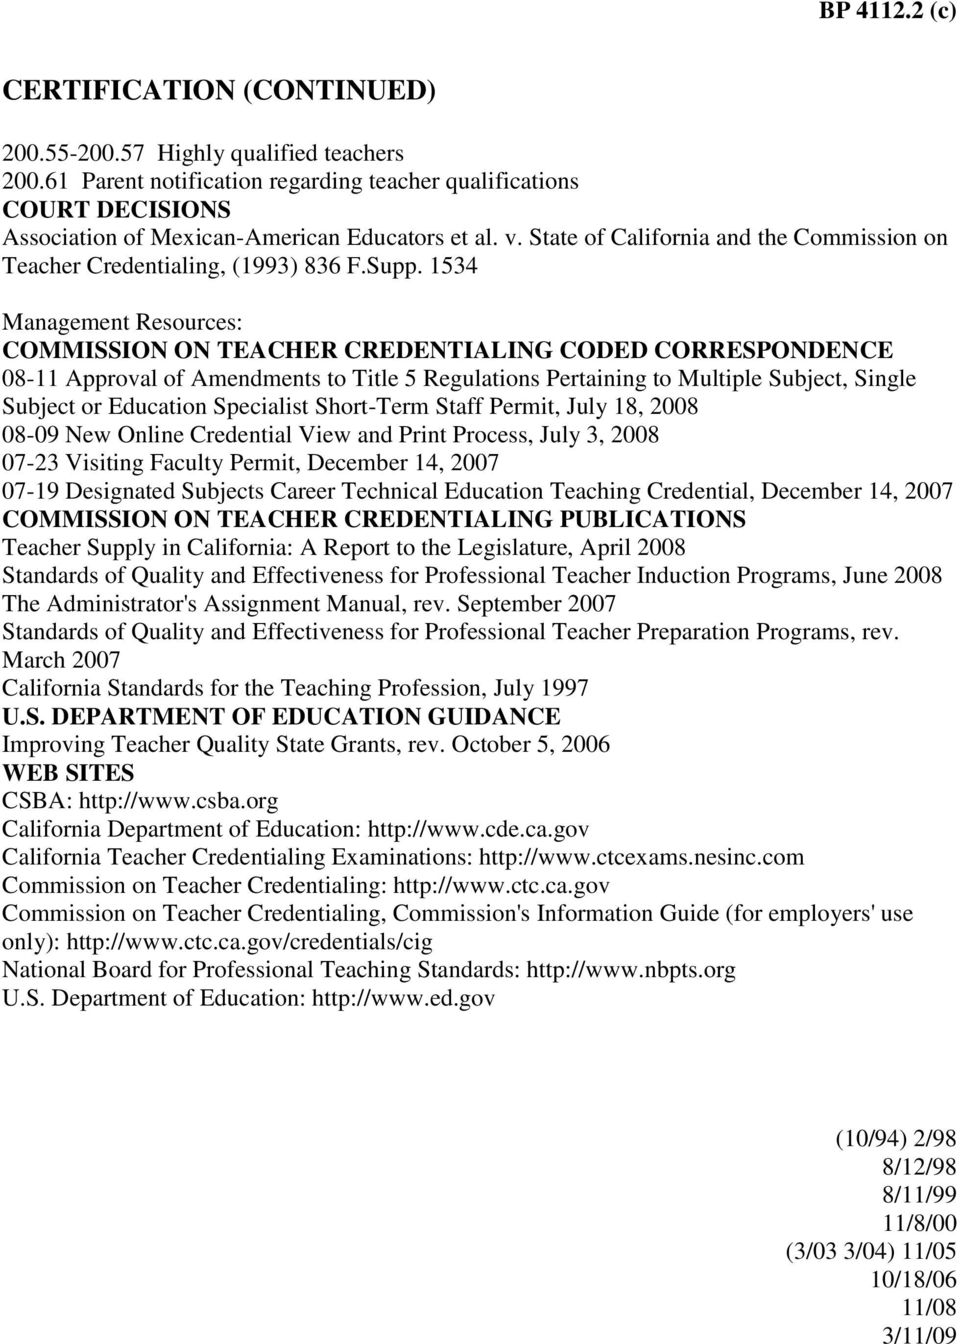 State of California and the Commission on Teacher Credentialing, (1993) 836 F.Supp.